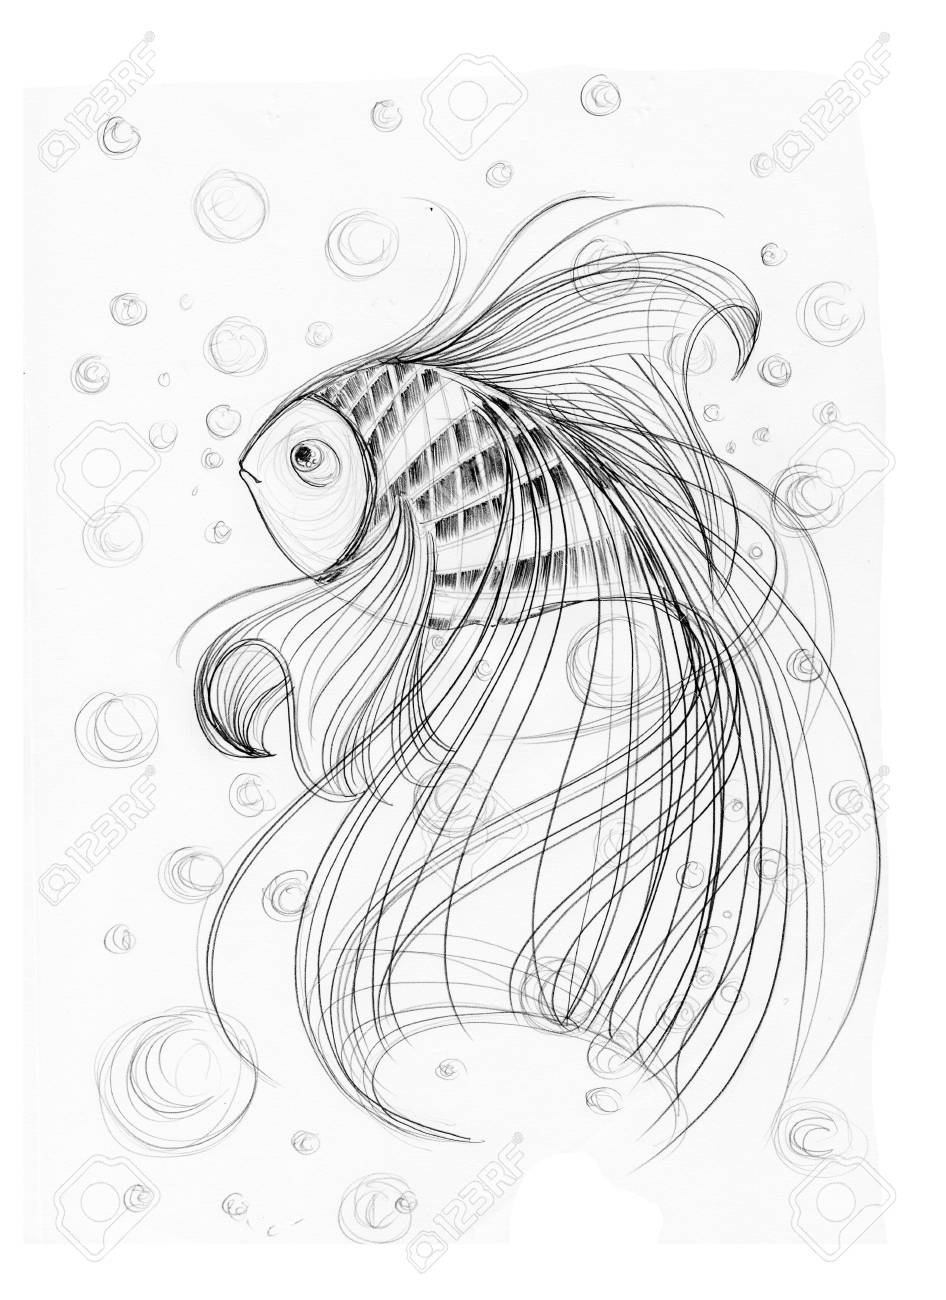 Cute fish imagination applied art design freehand pencil sketch black and white background is bubbles